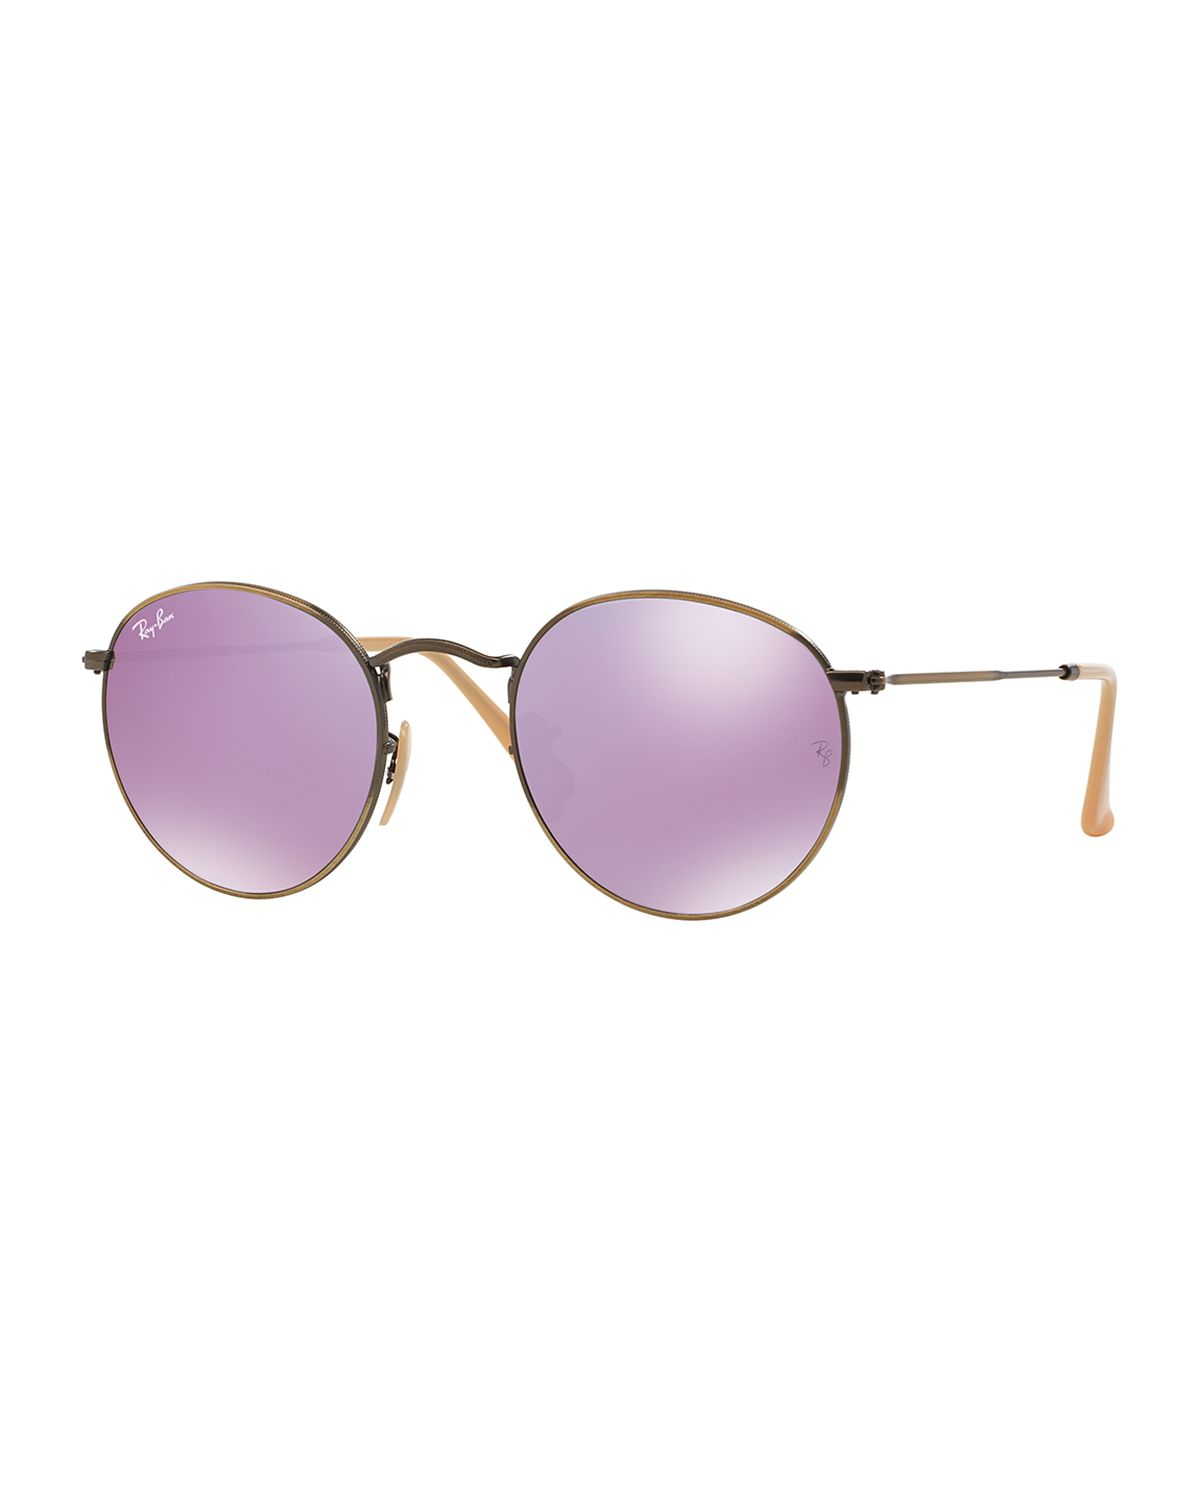 ray ban round metal sunglasses in purple lyst. Black Bedroom Furniture Sets. Home Design Ideas